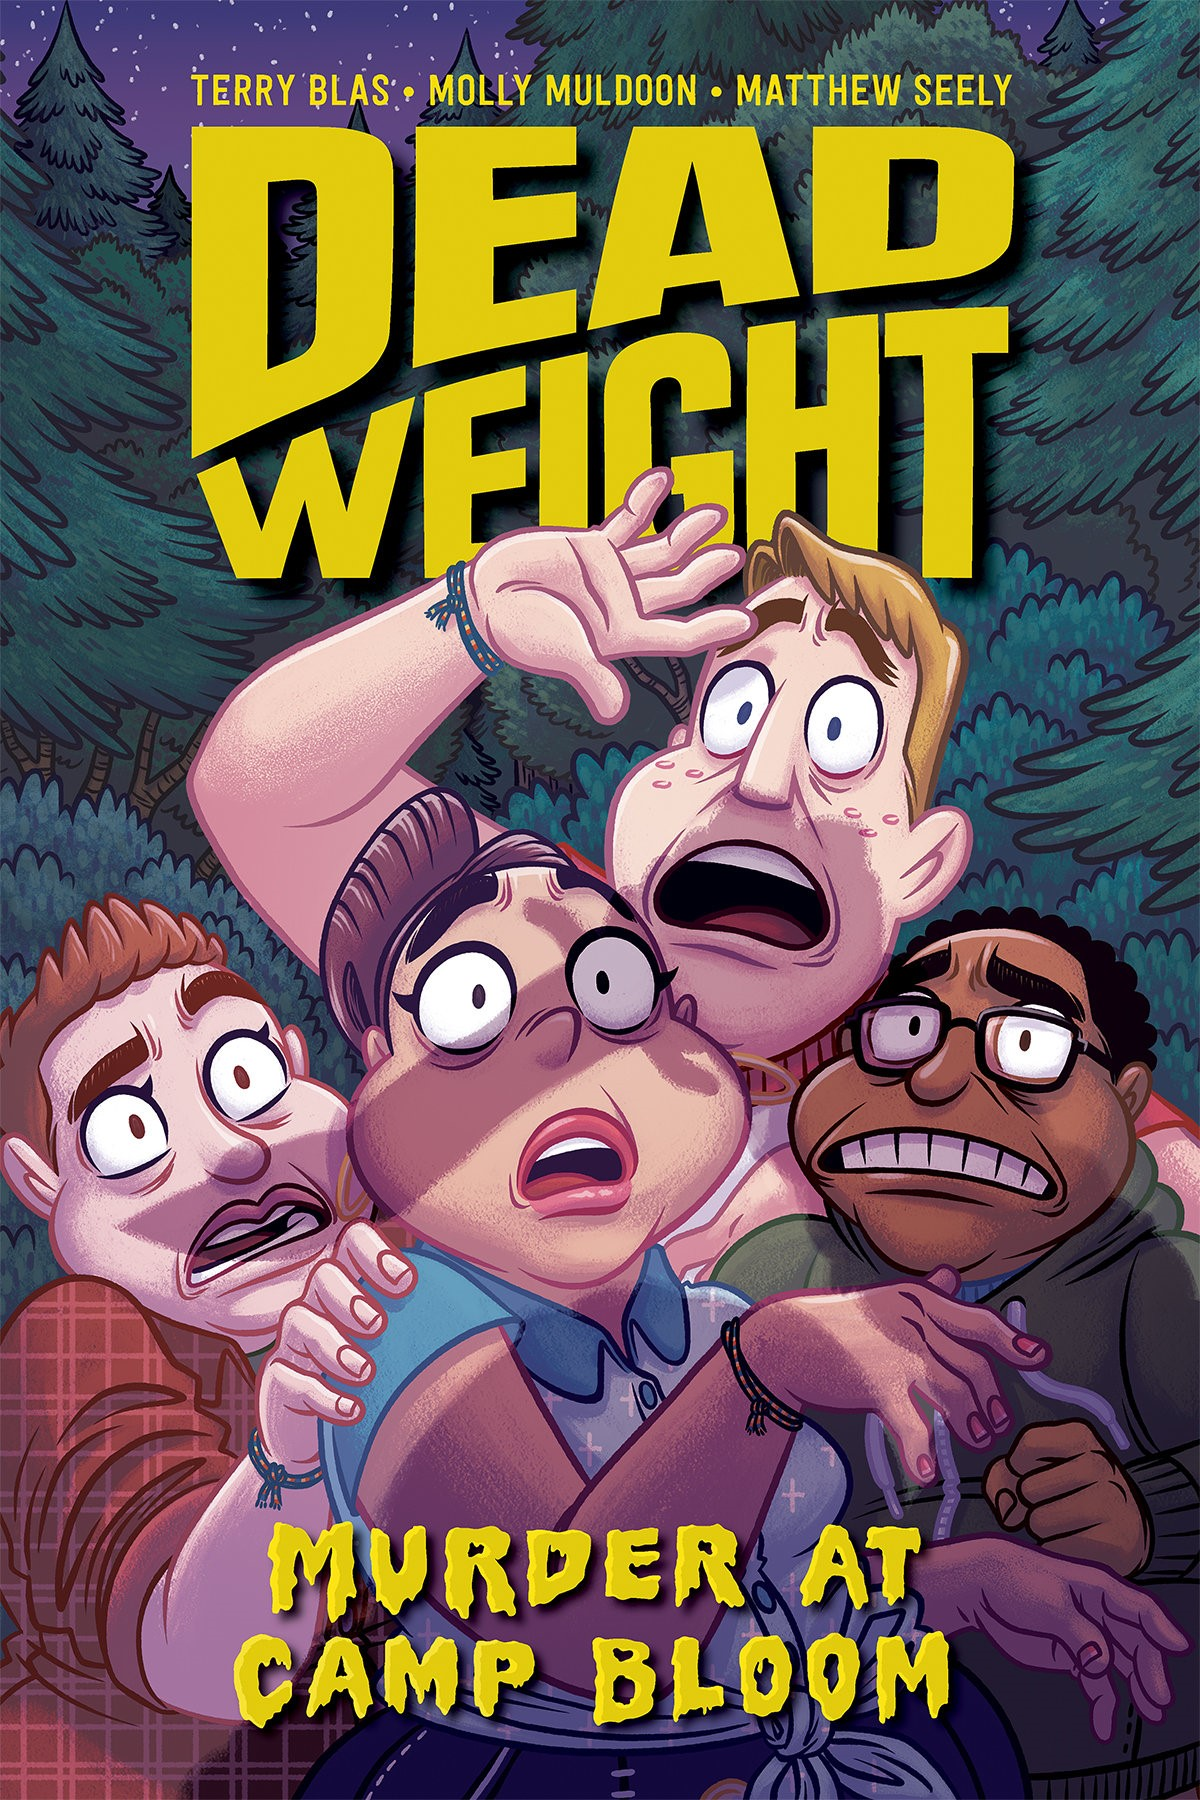 Dead Weight: Murder at Camp Bloom  by Terry Blas, Molly Muldoon and Matthew Seely